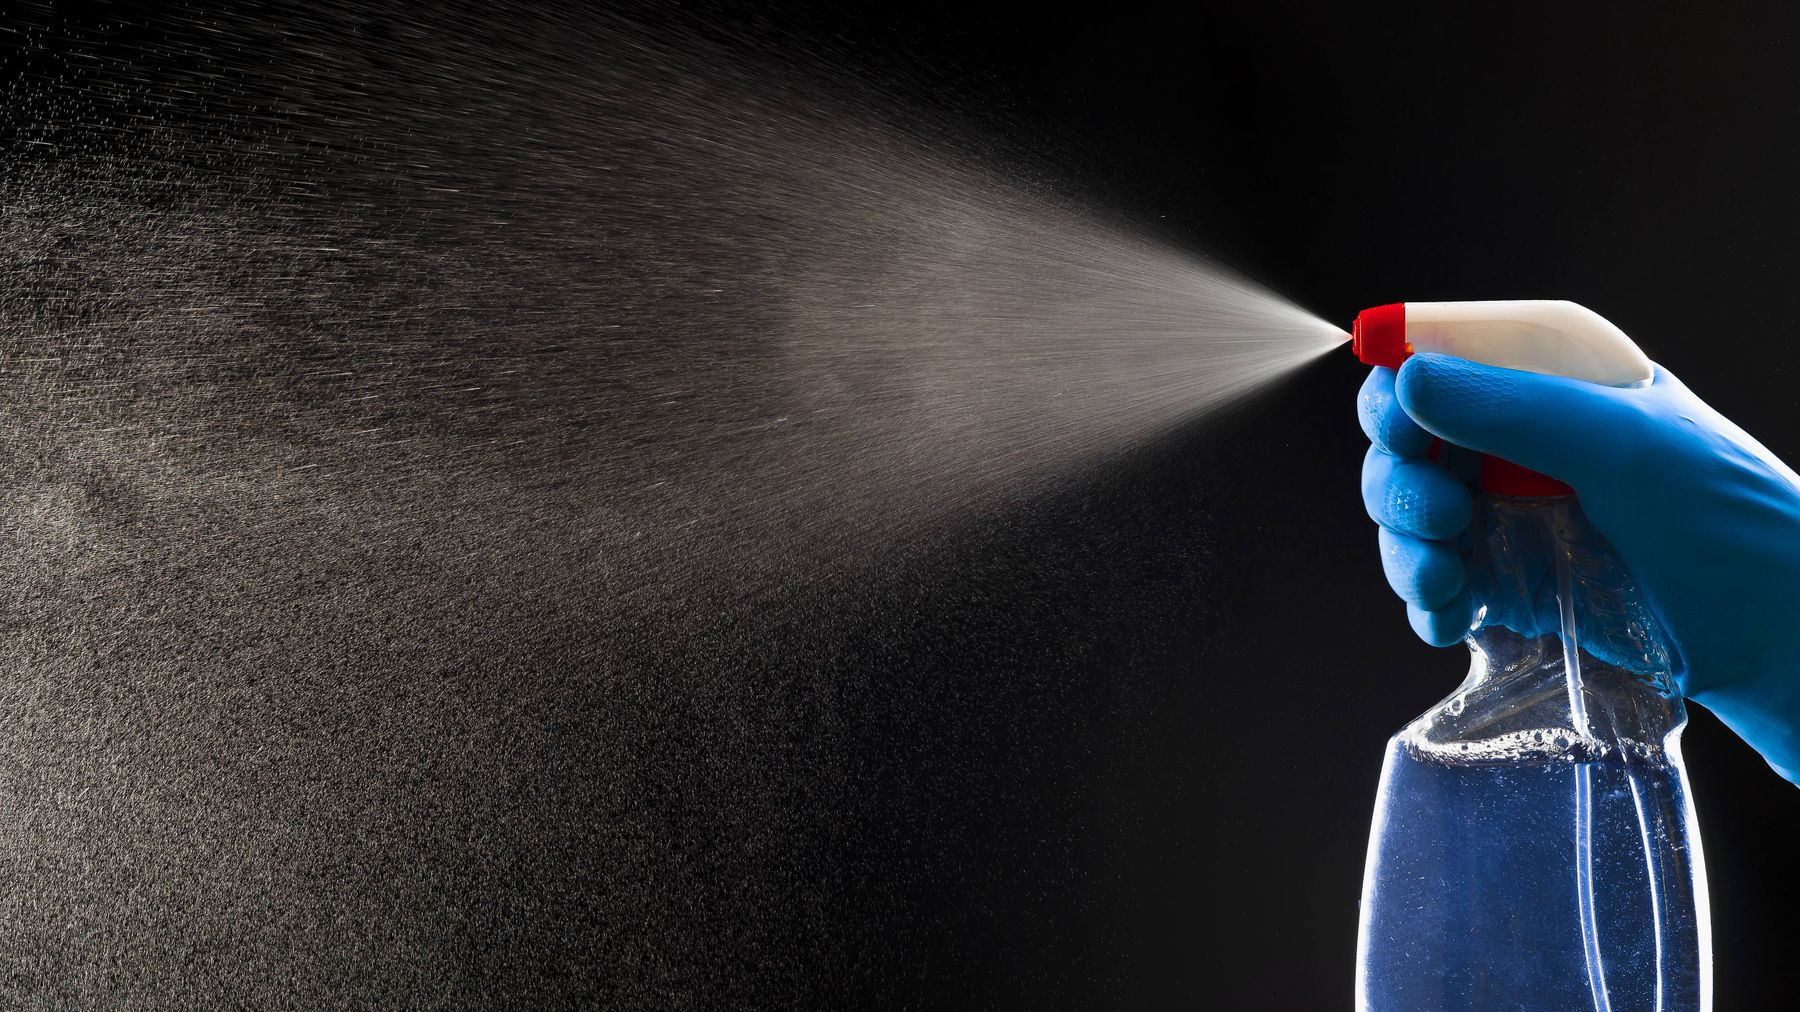 Spray a solution of soap and water